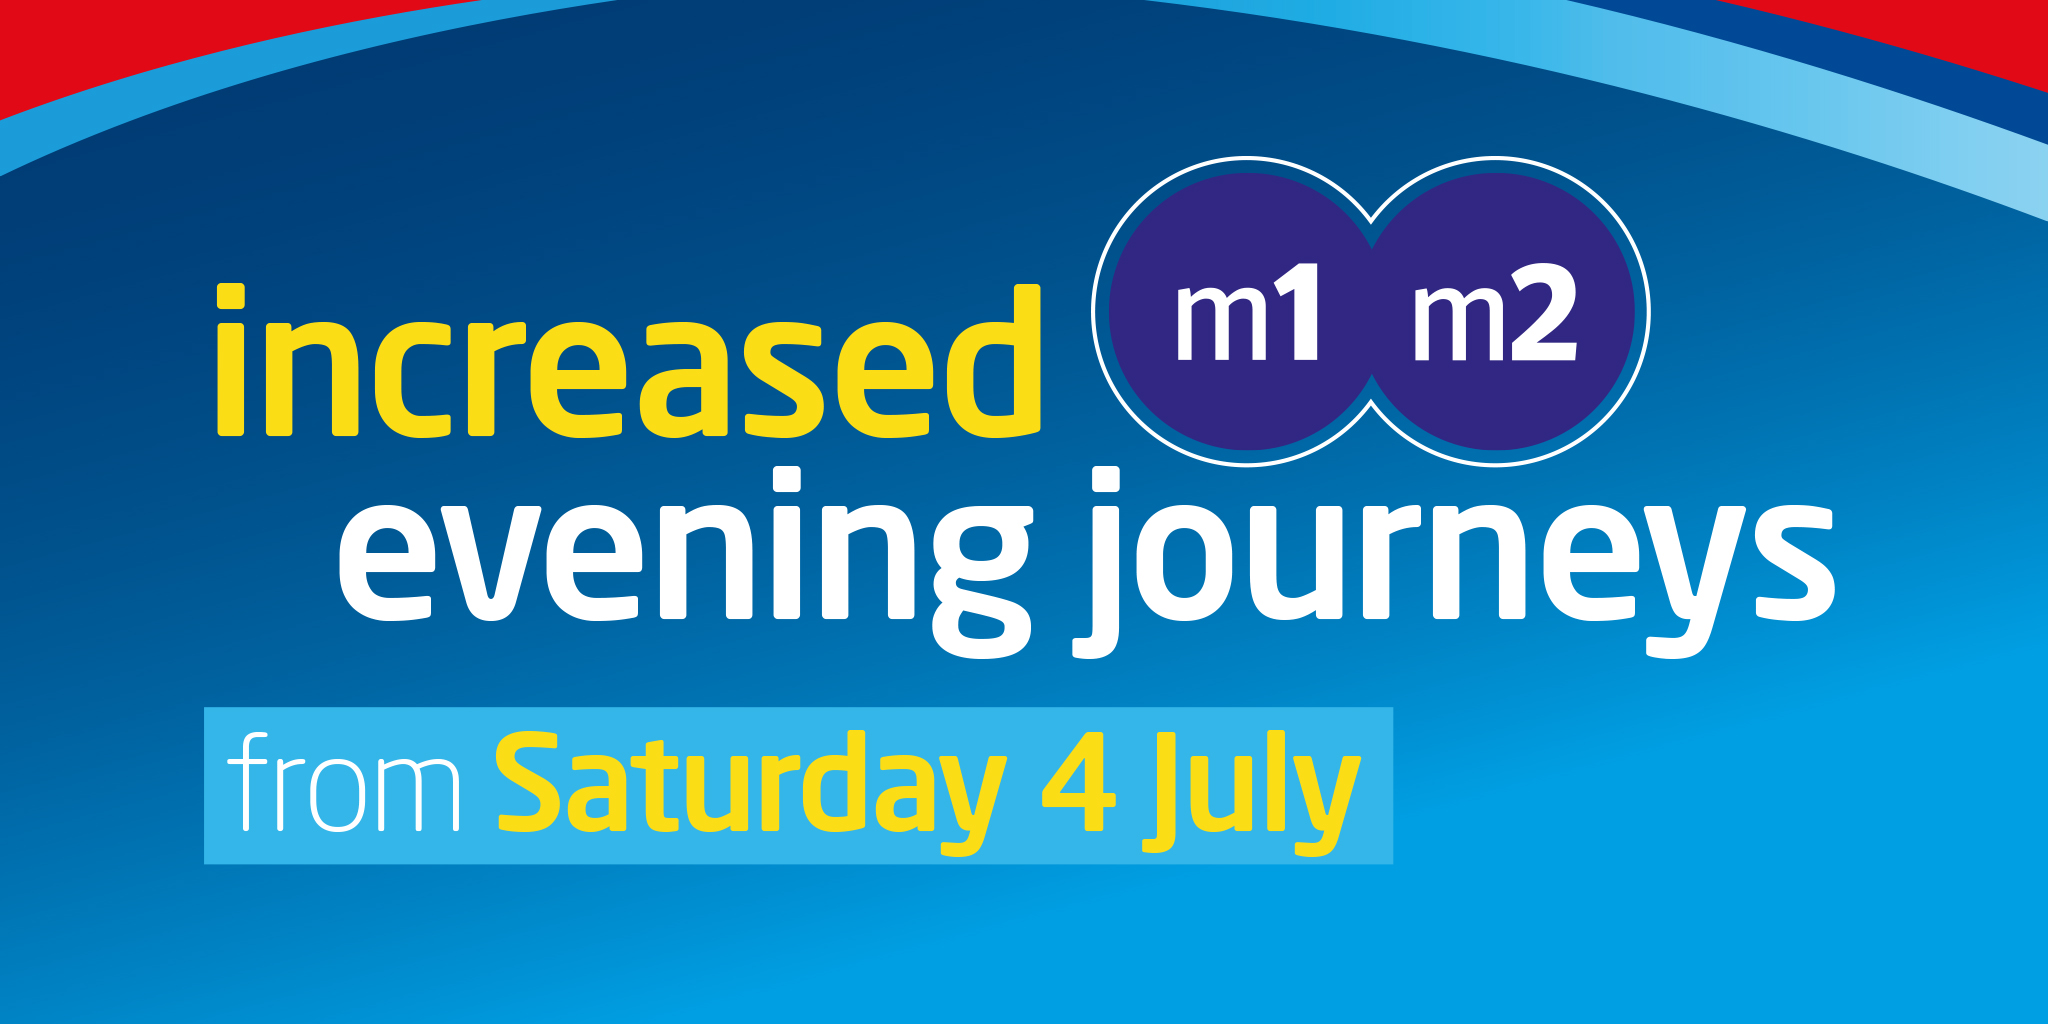 Image reading 'increased m1/m2 evening journeys from Saturday 4 July'